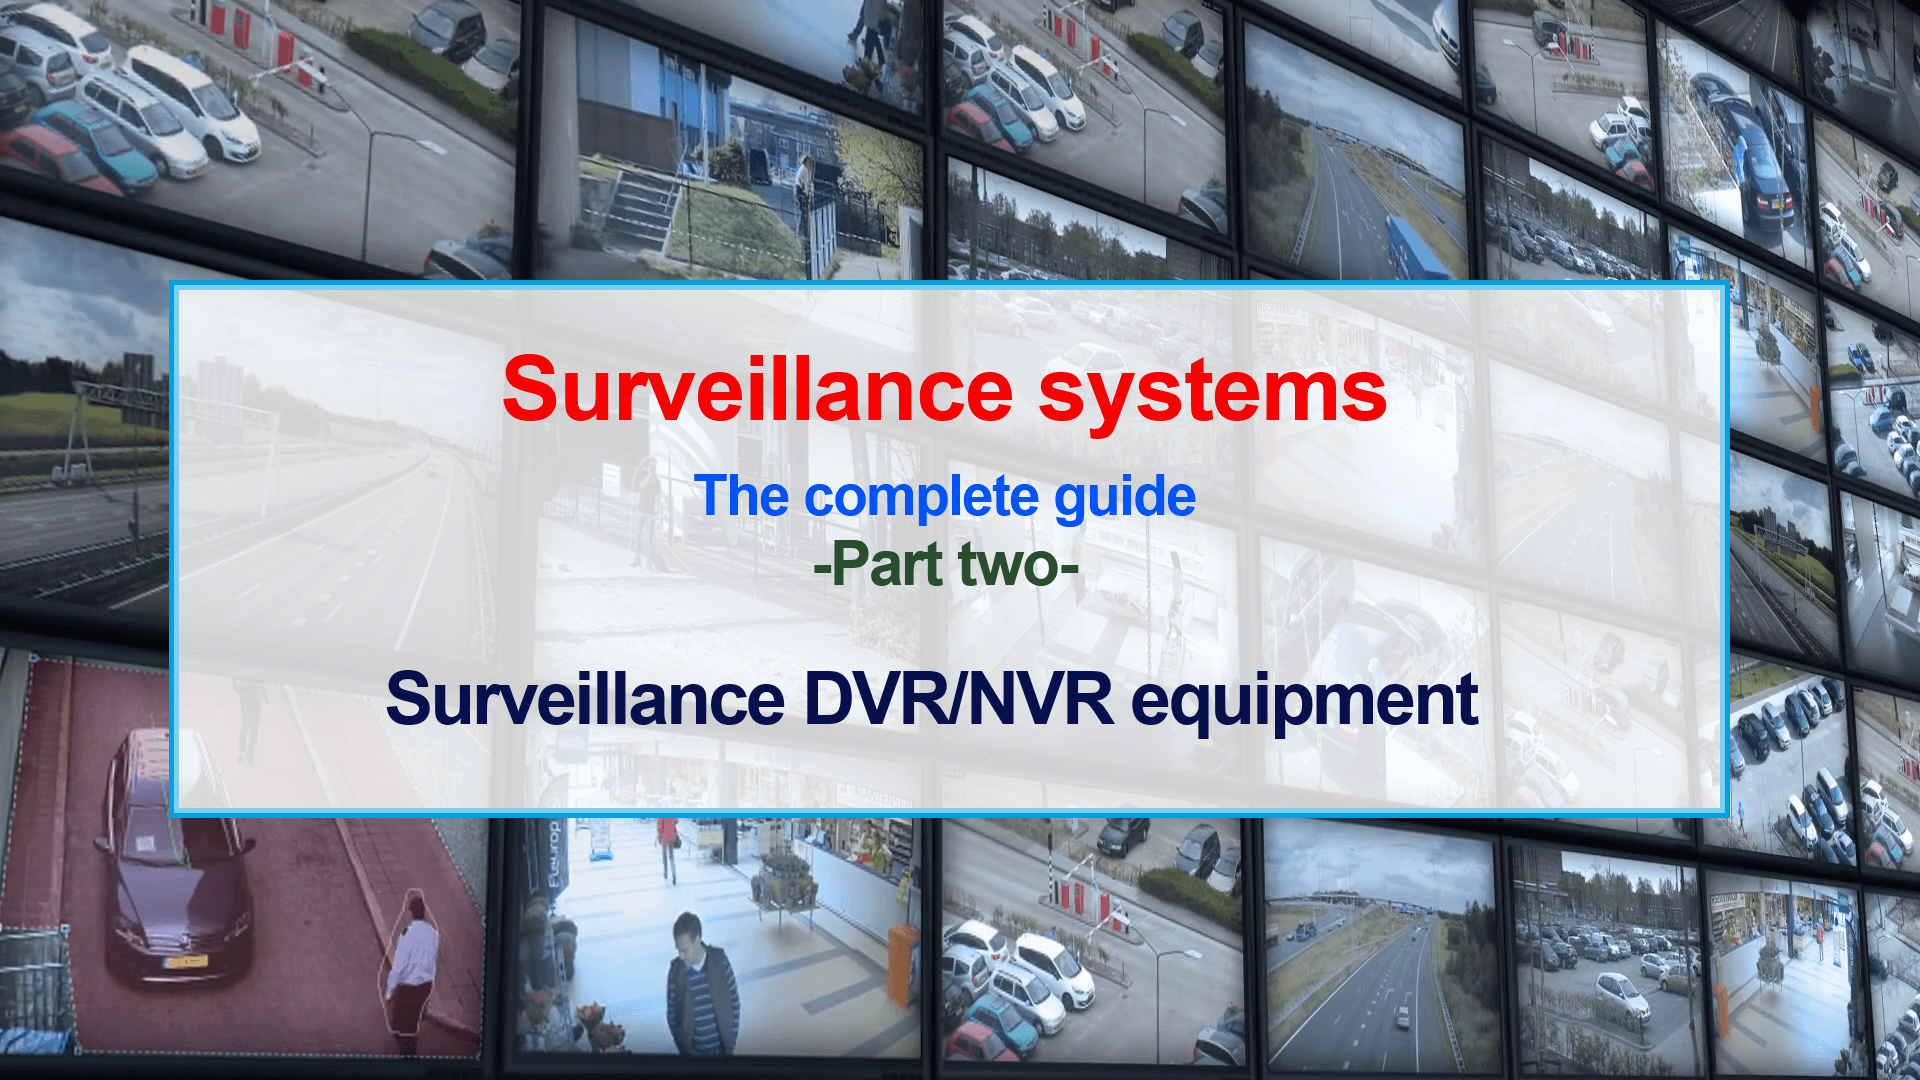 Complete Guide to Surveillance Systems (Part Two): DVR/NVR | Dealna